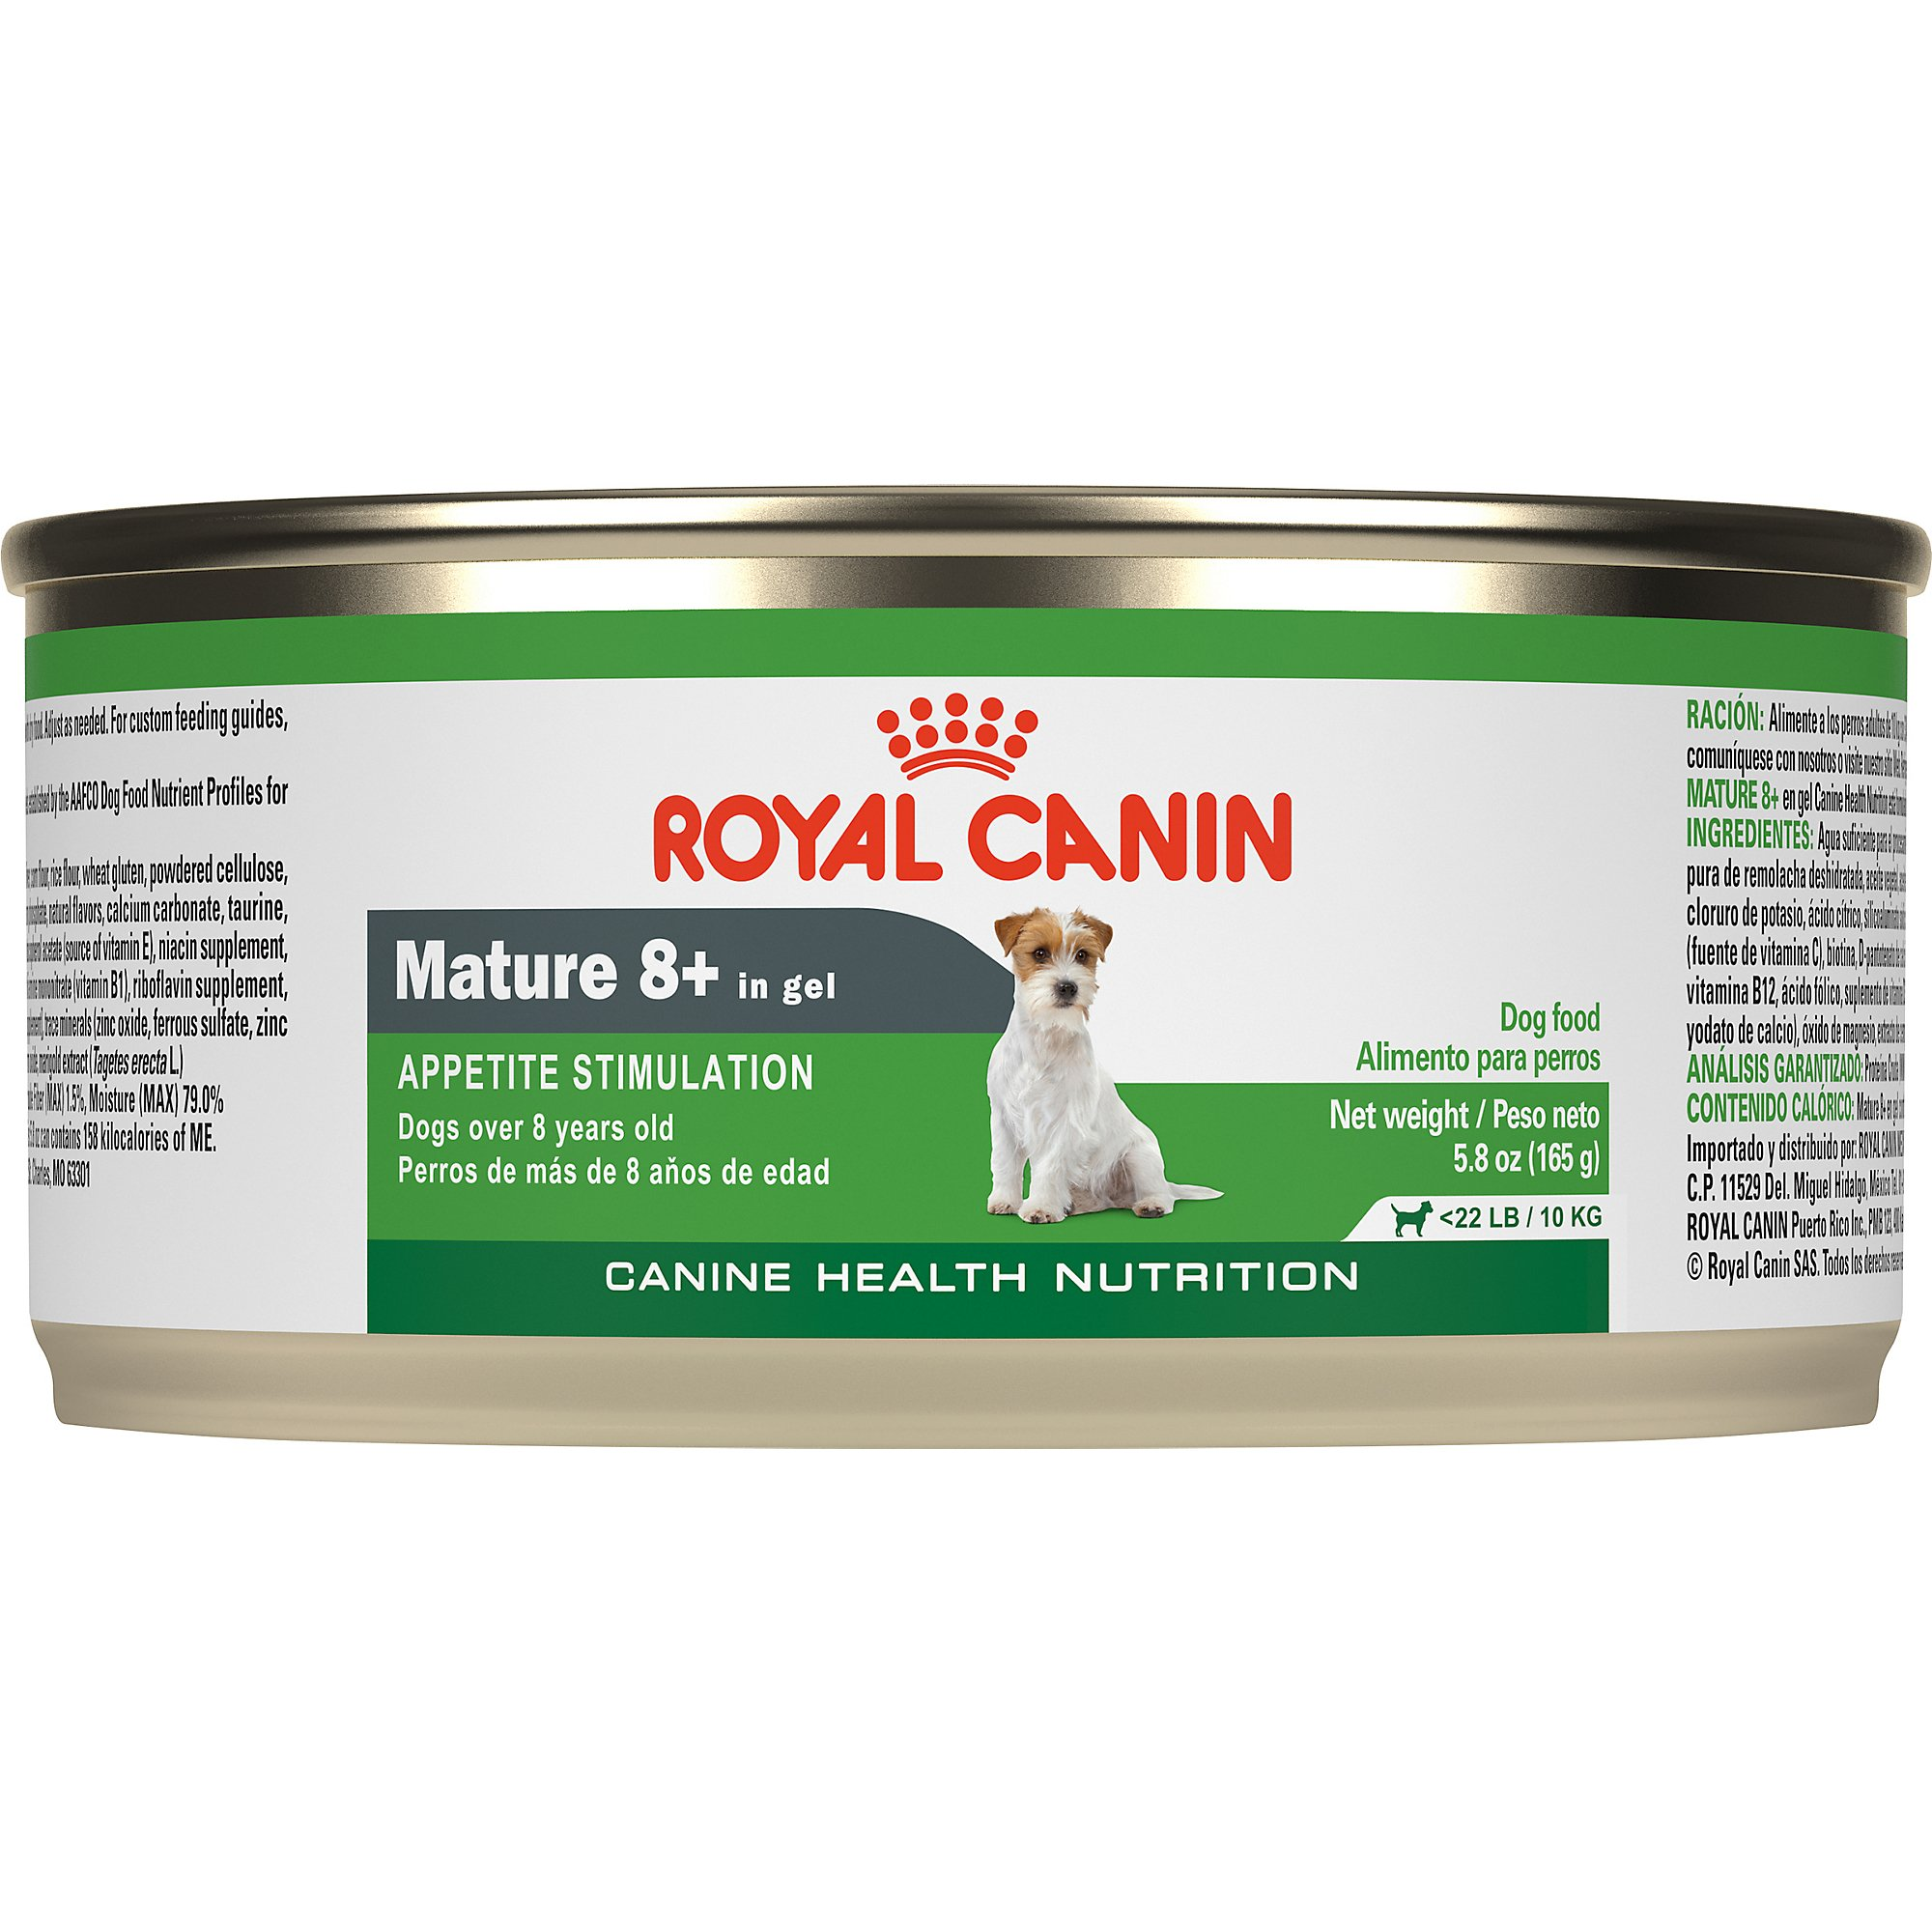 Royal Canin Senior Canned Dog Food